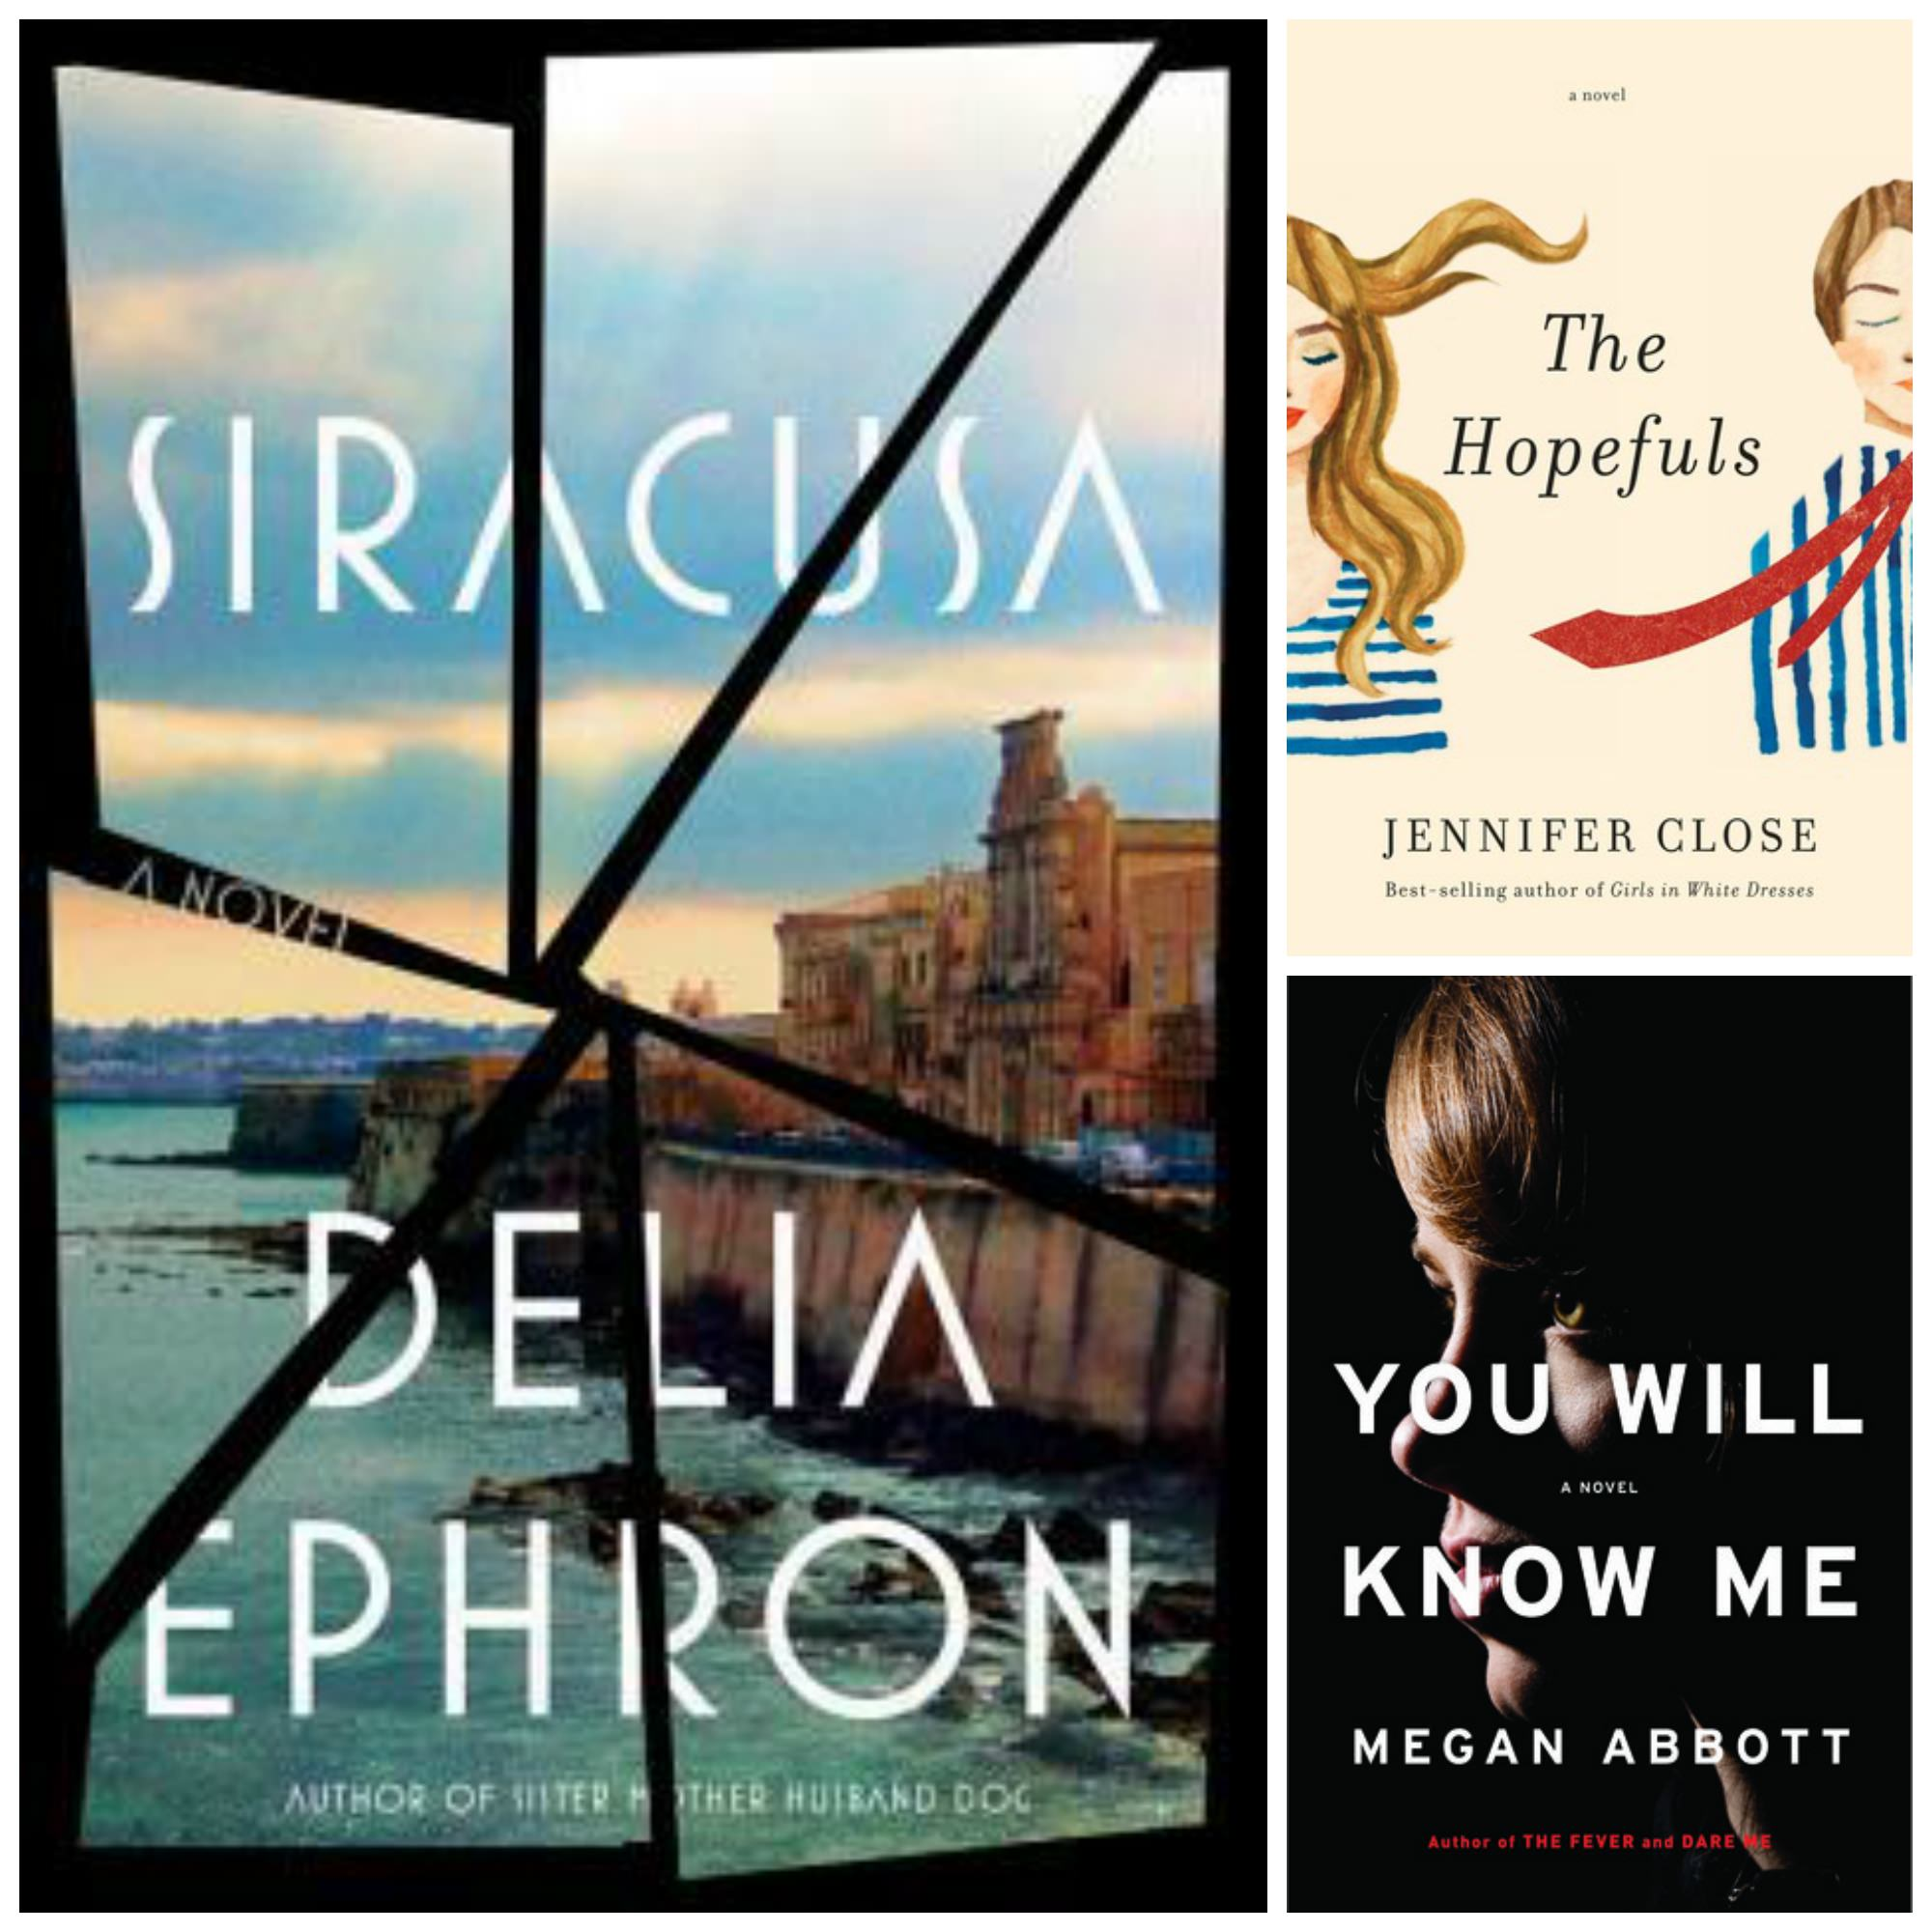 Three books to add to your summer reading list immediately!